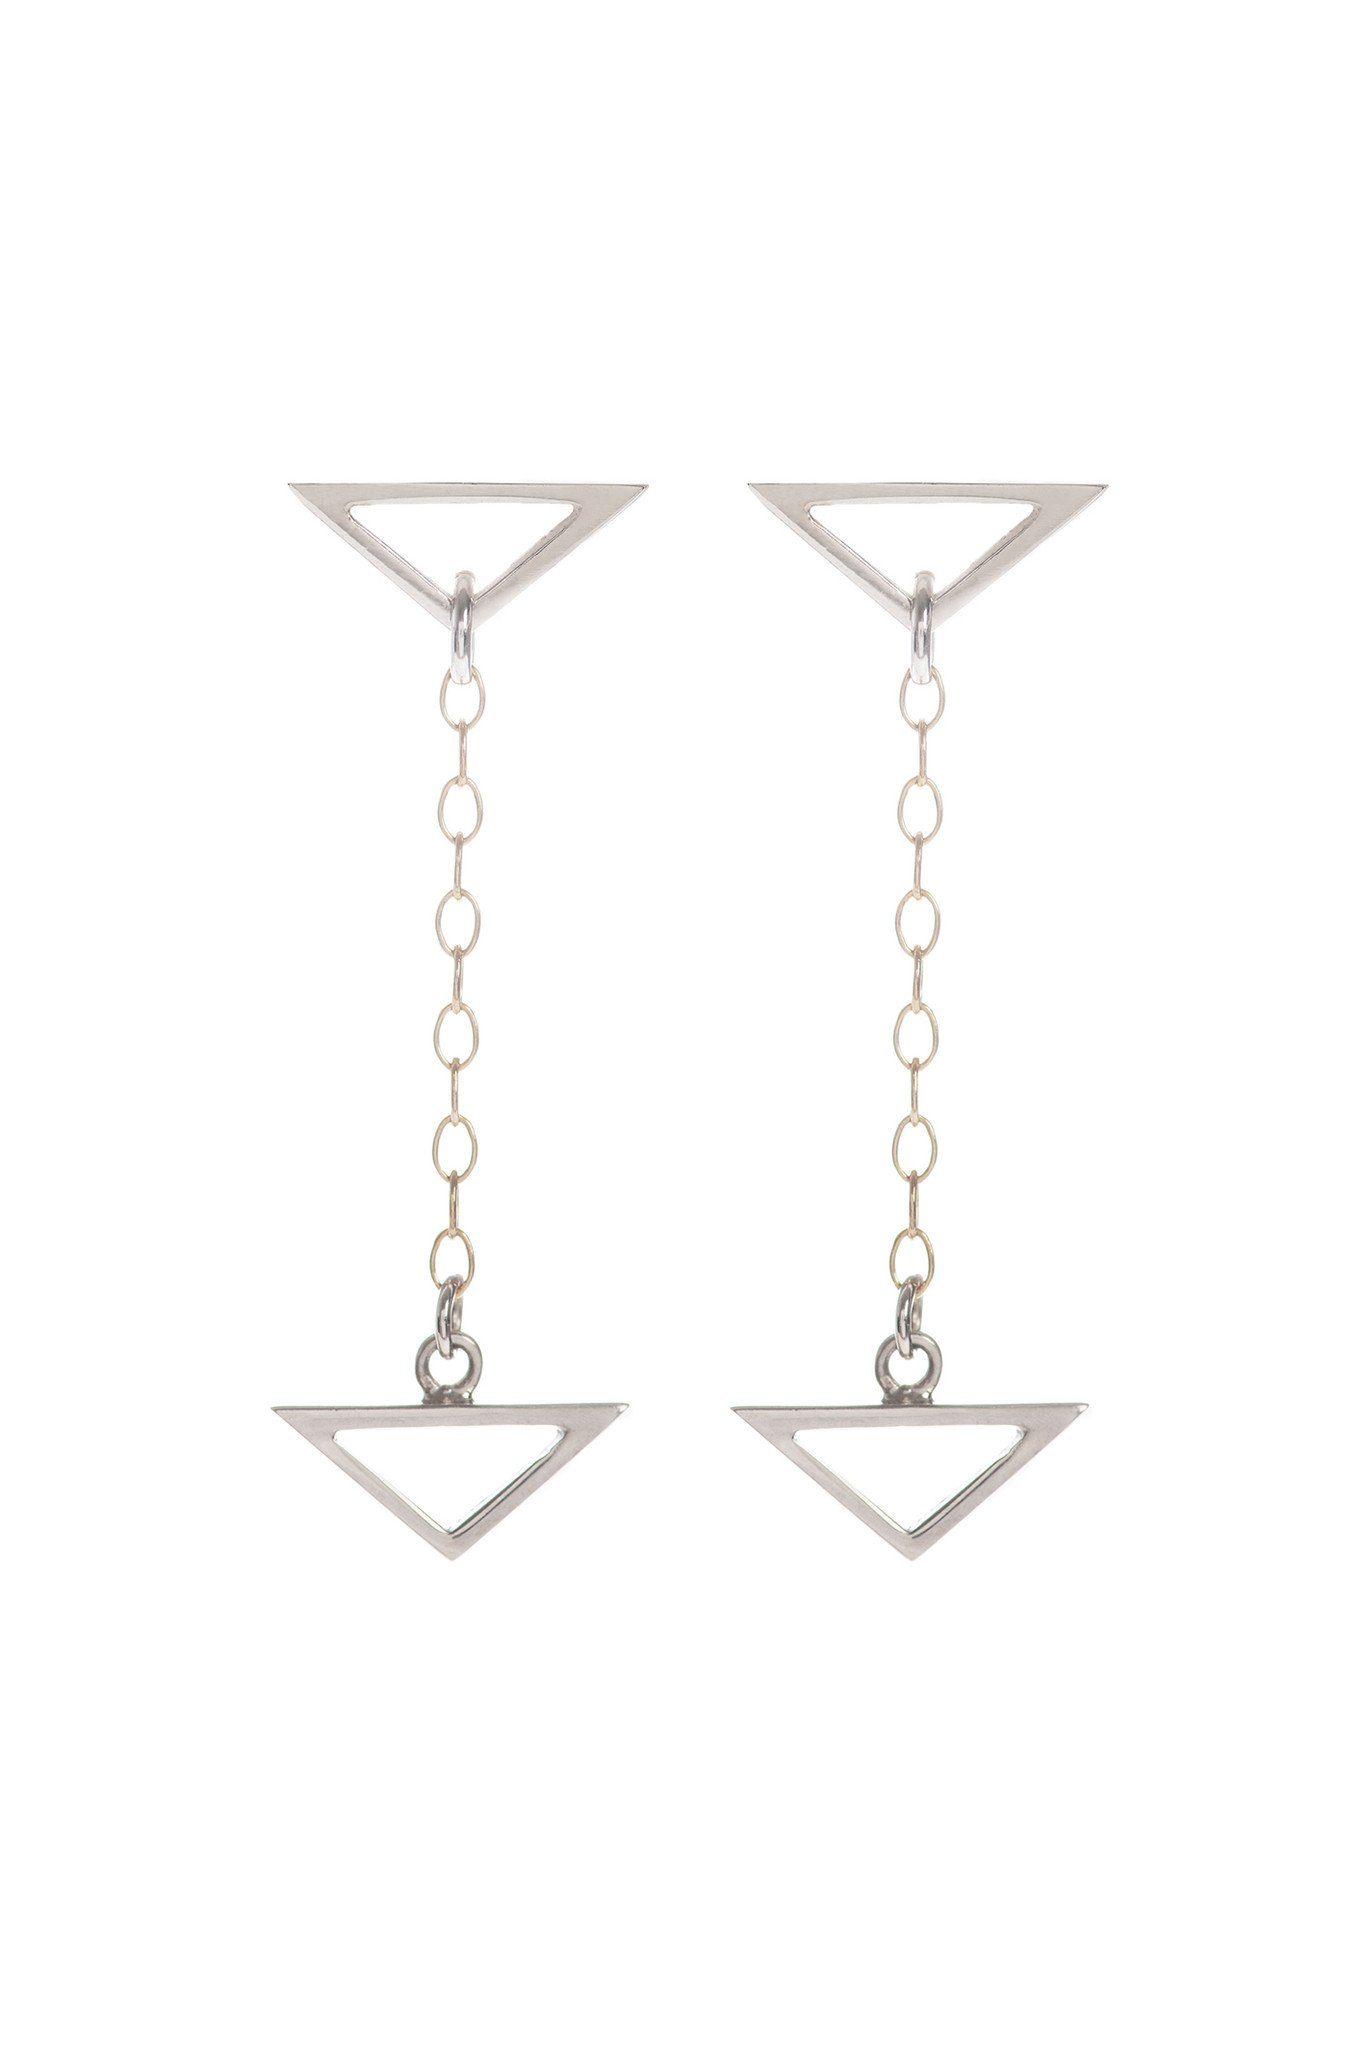 Hang Loose, Silver Drop Earrings by Sally Lane Jewellery on curated-crowd.com